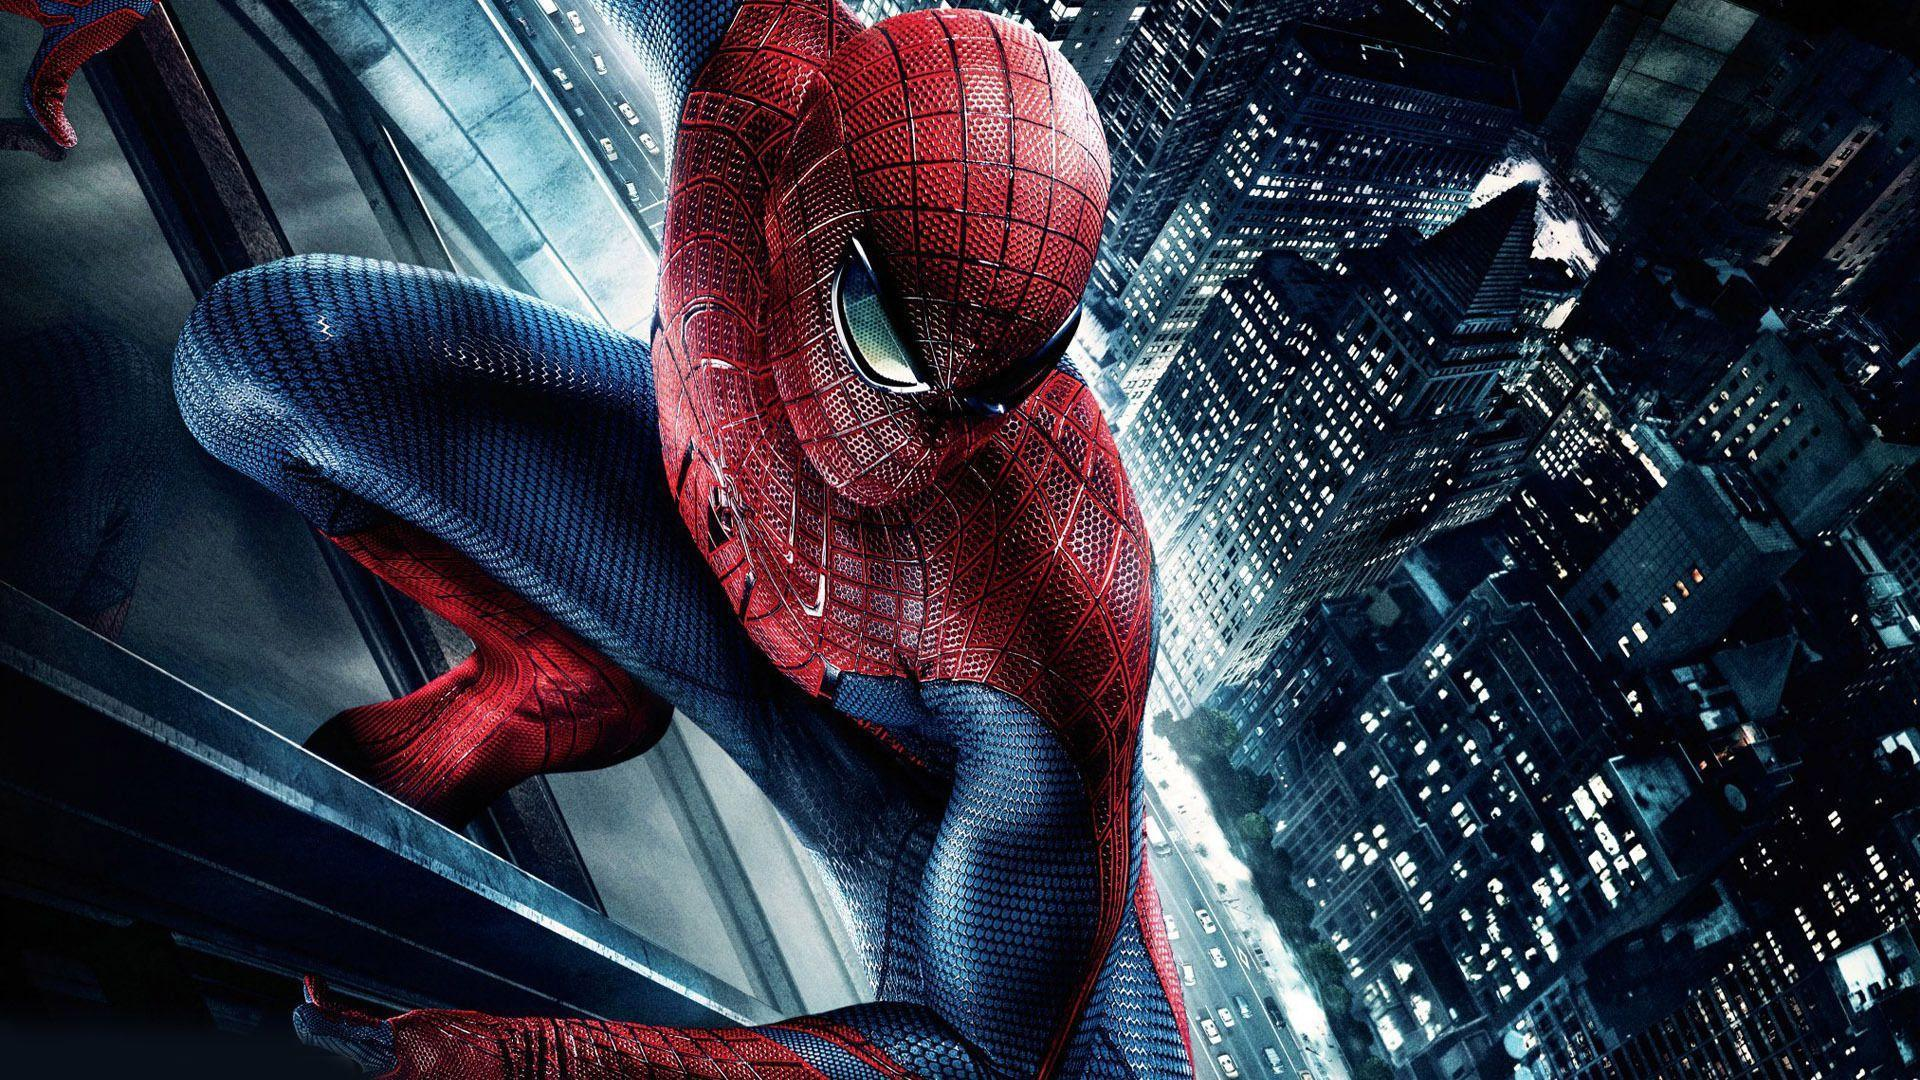 Spider Man HD Wallpapers 1080p - WallpaperSafari